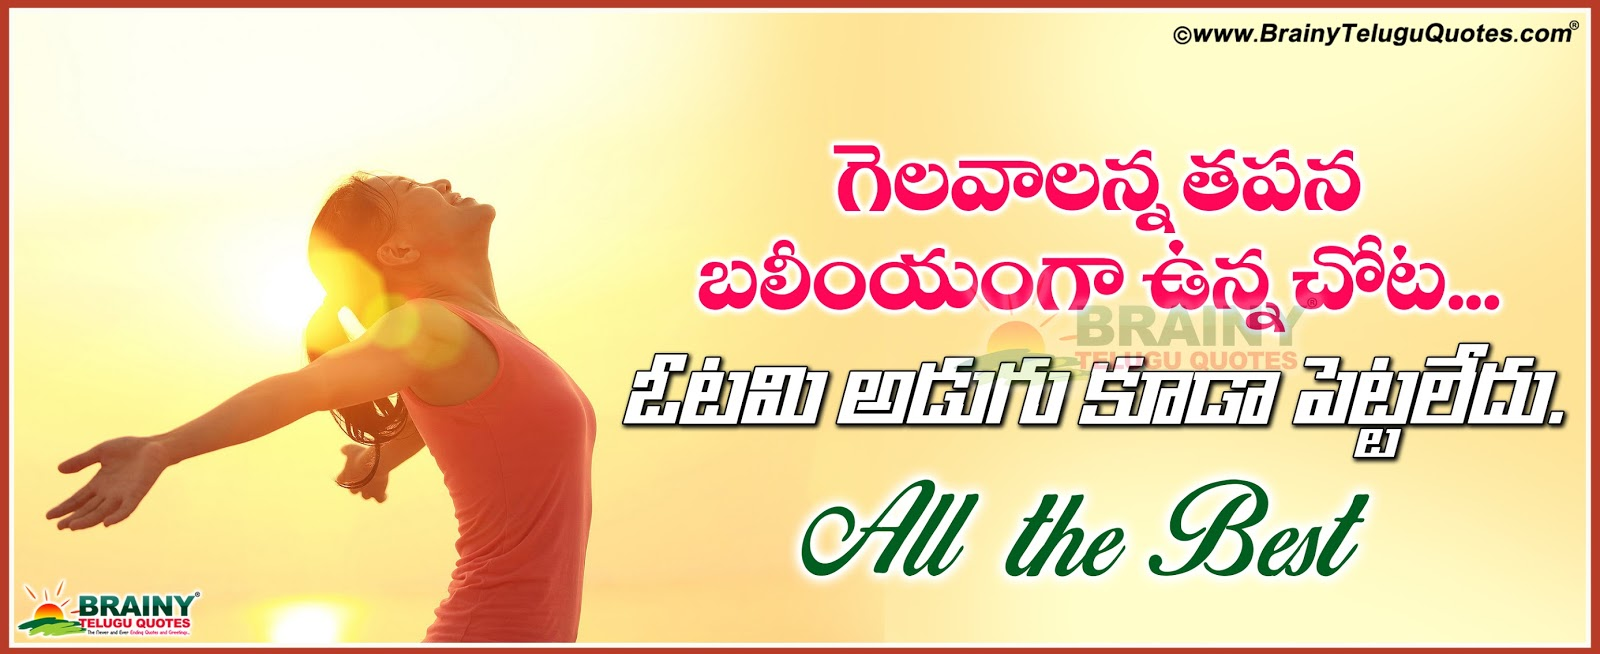 Facebook Cover Photos With Quotes All The Bestbest Off Luck Telugu Life Messages And Sms For